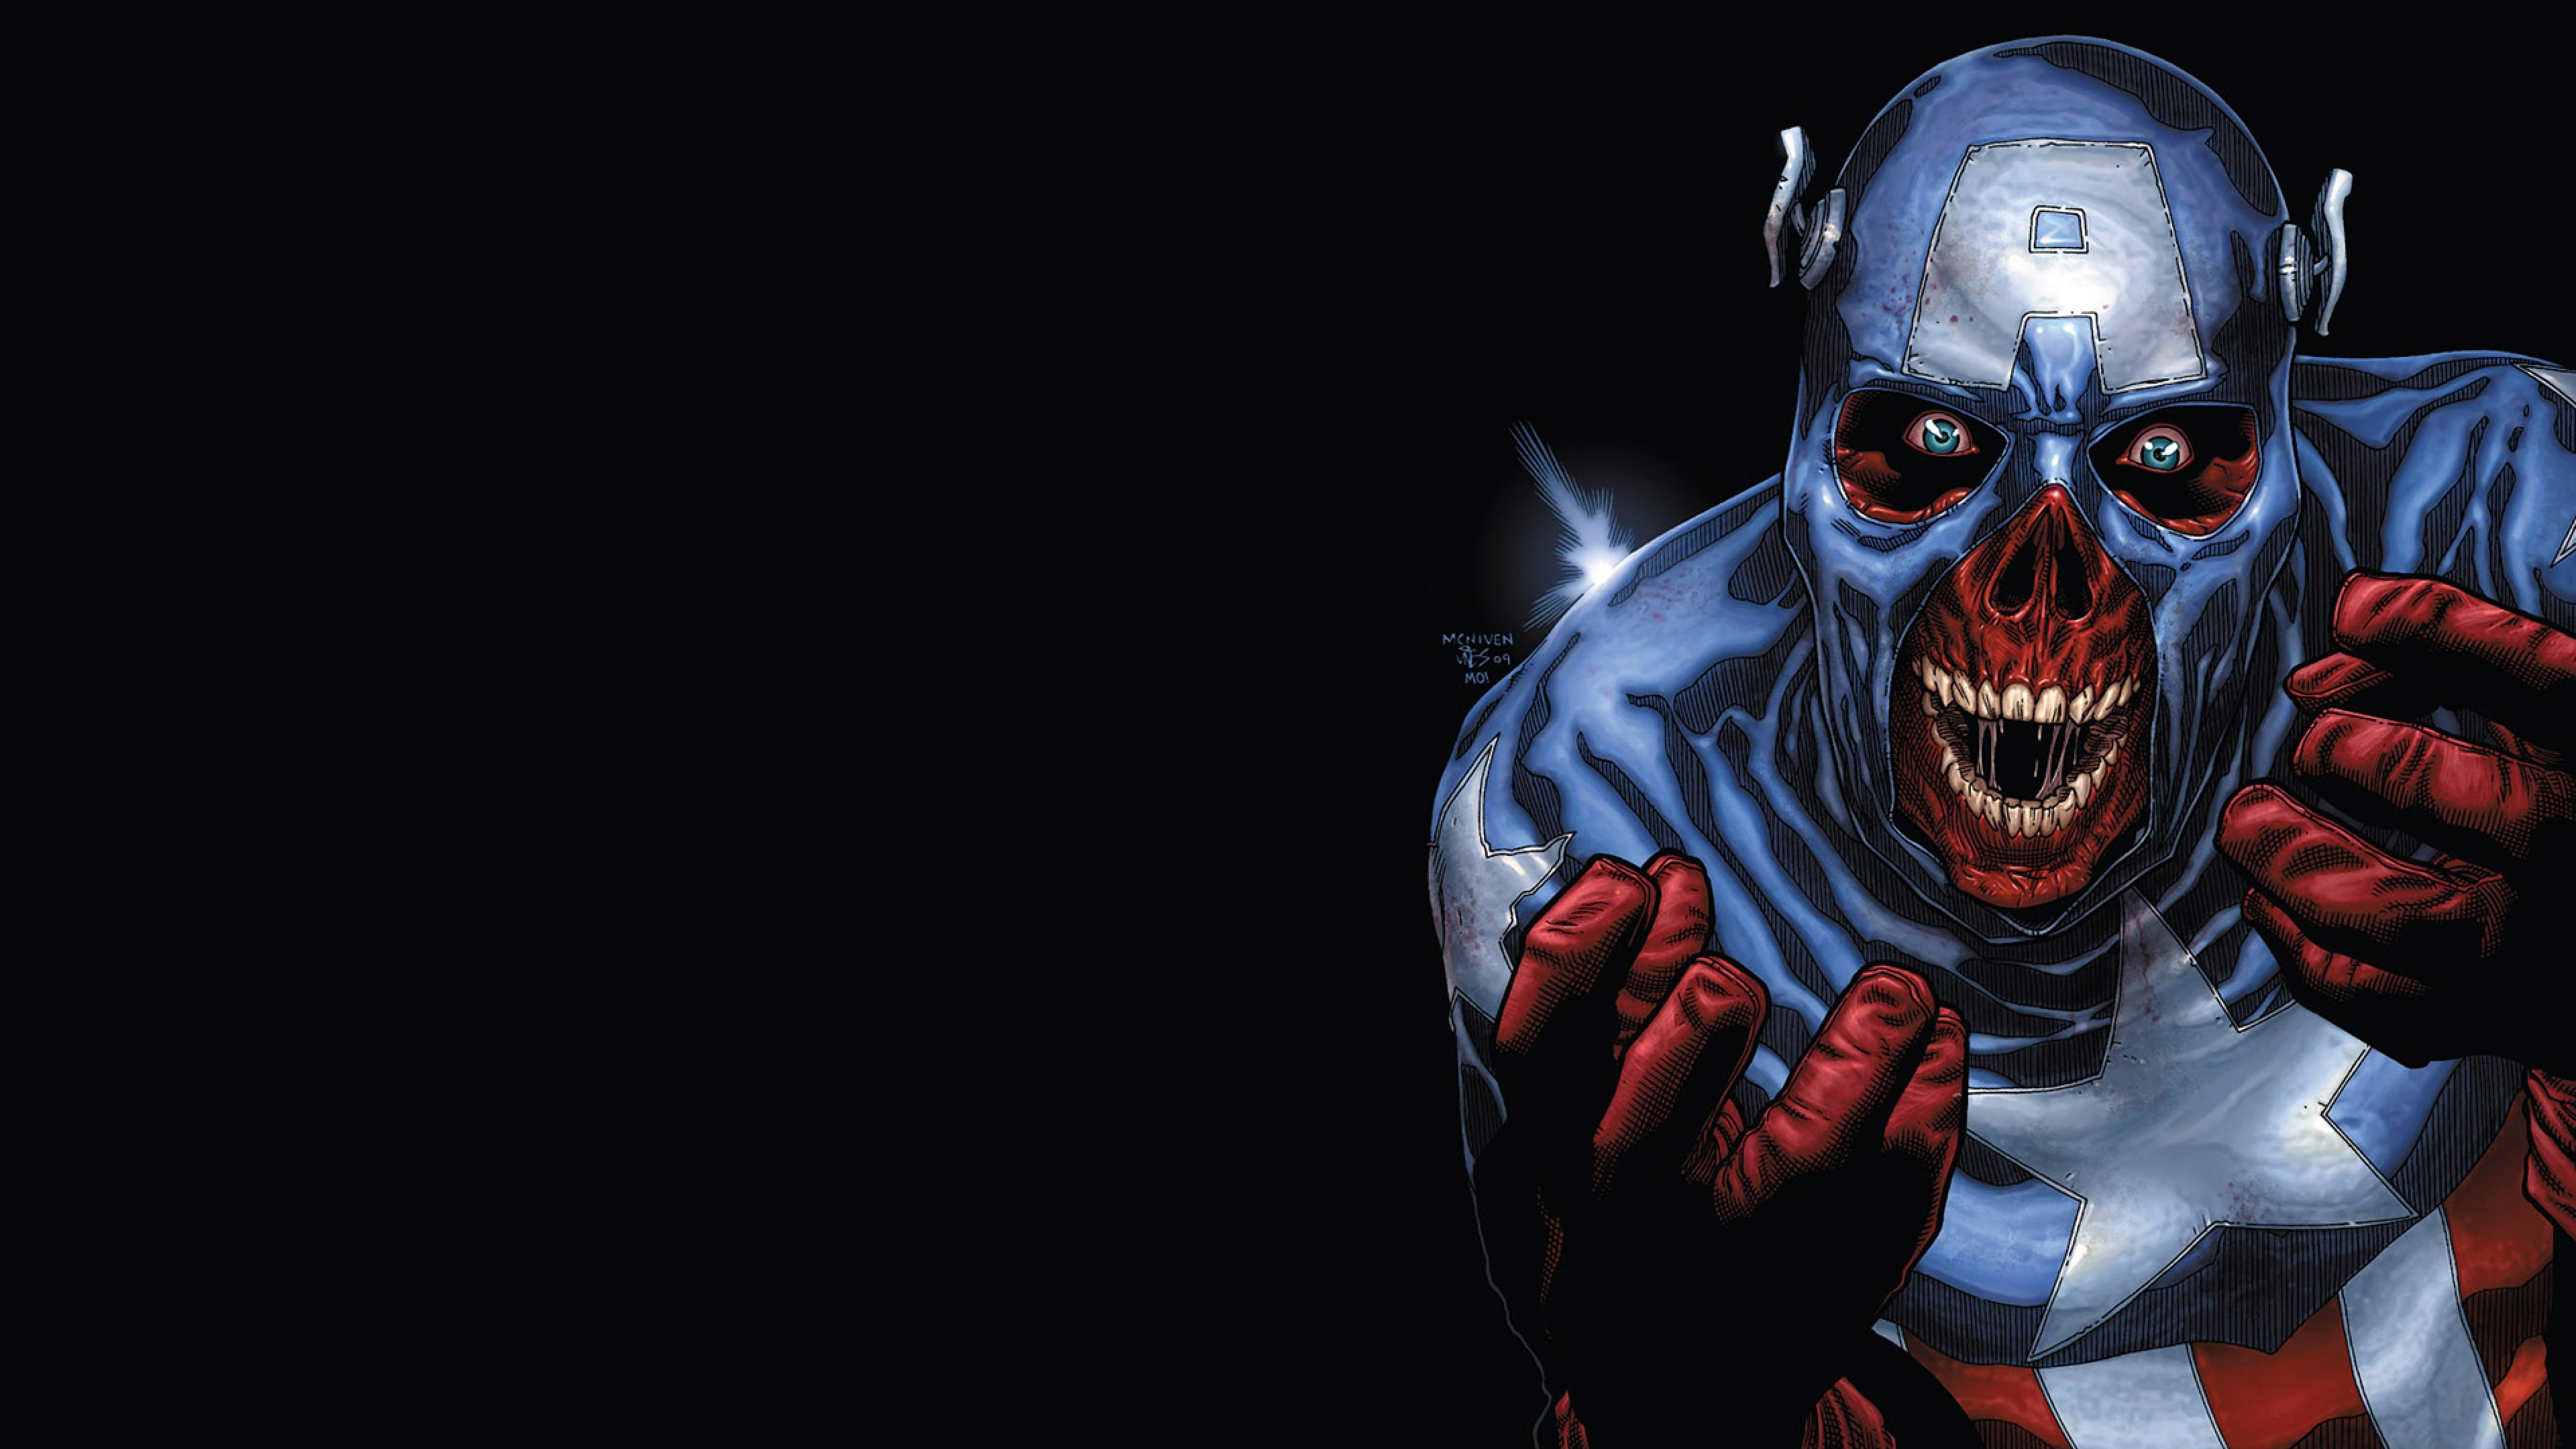 3840x2160 Preview wallpaper captain america, marvel, zombie art